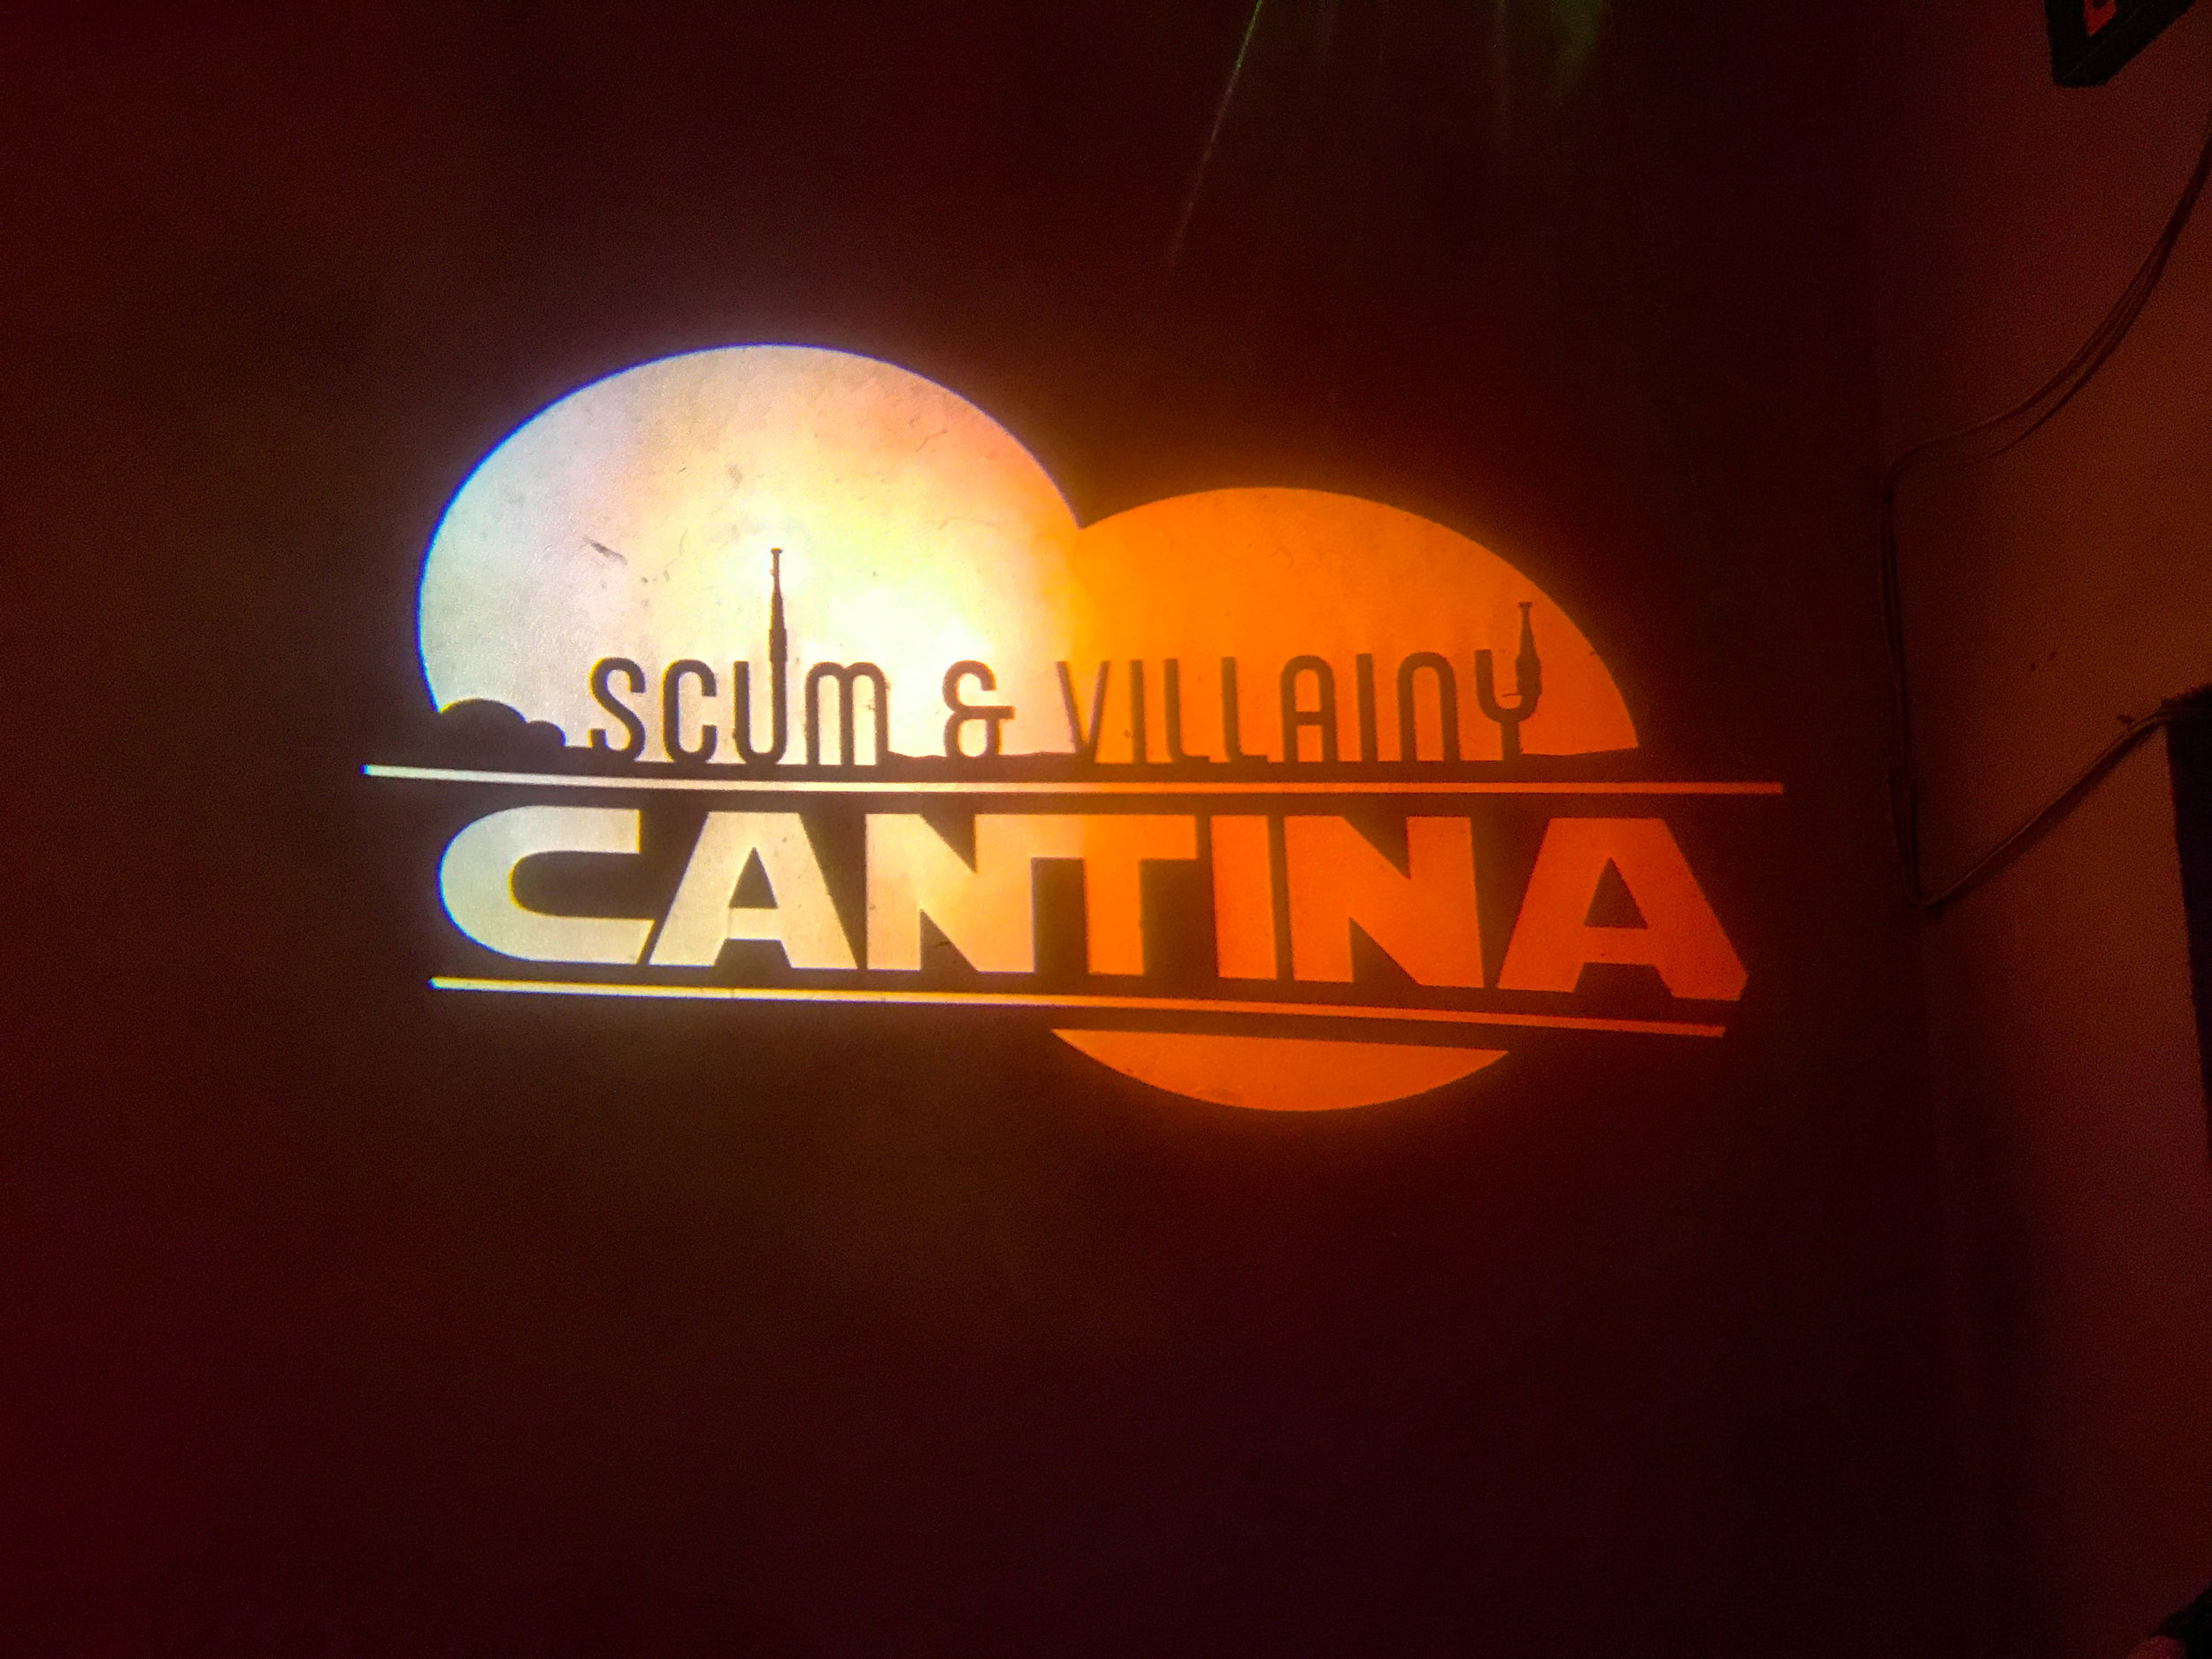 Scum and Villainy Cantina-Sign and logo.jpg